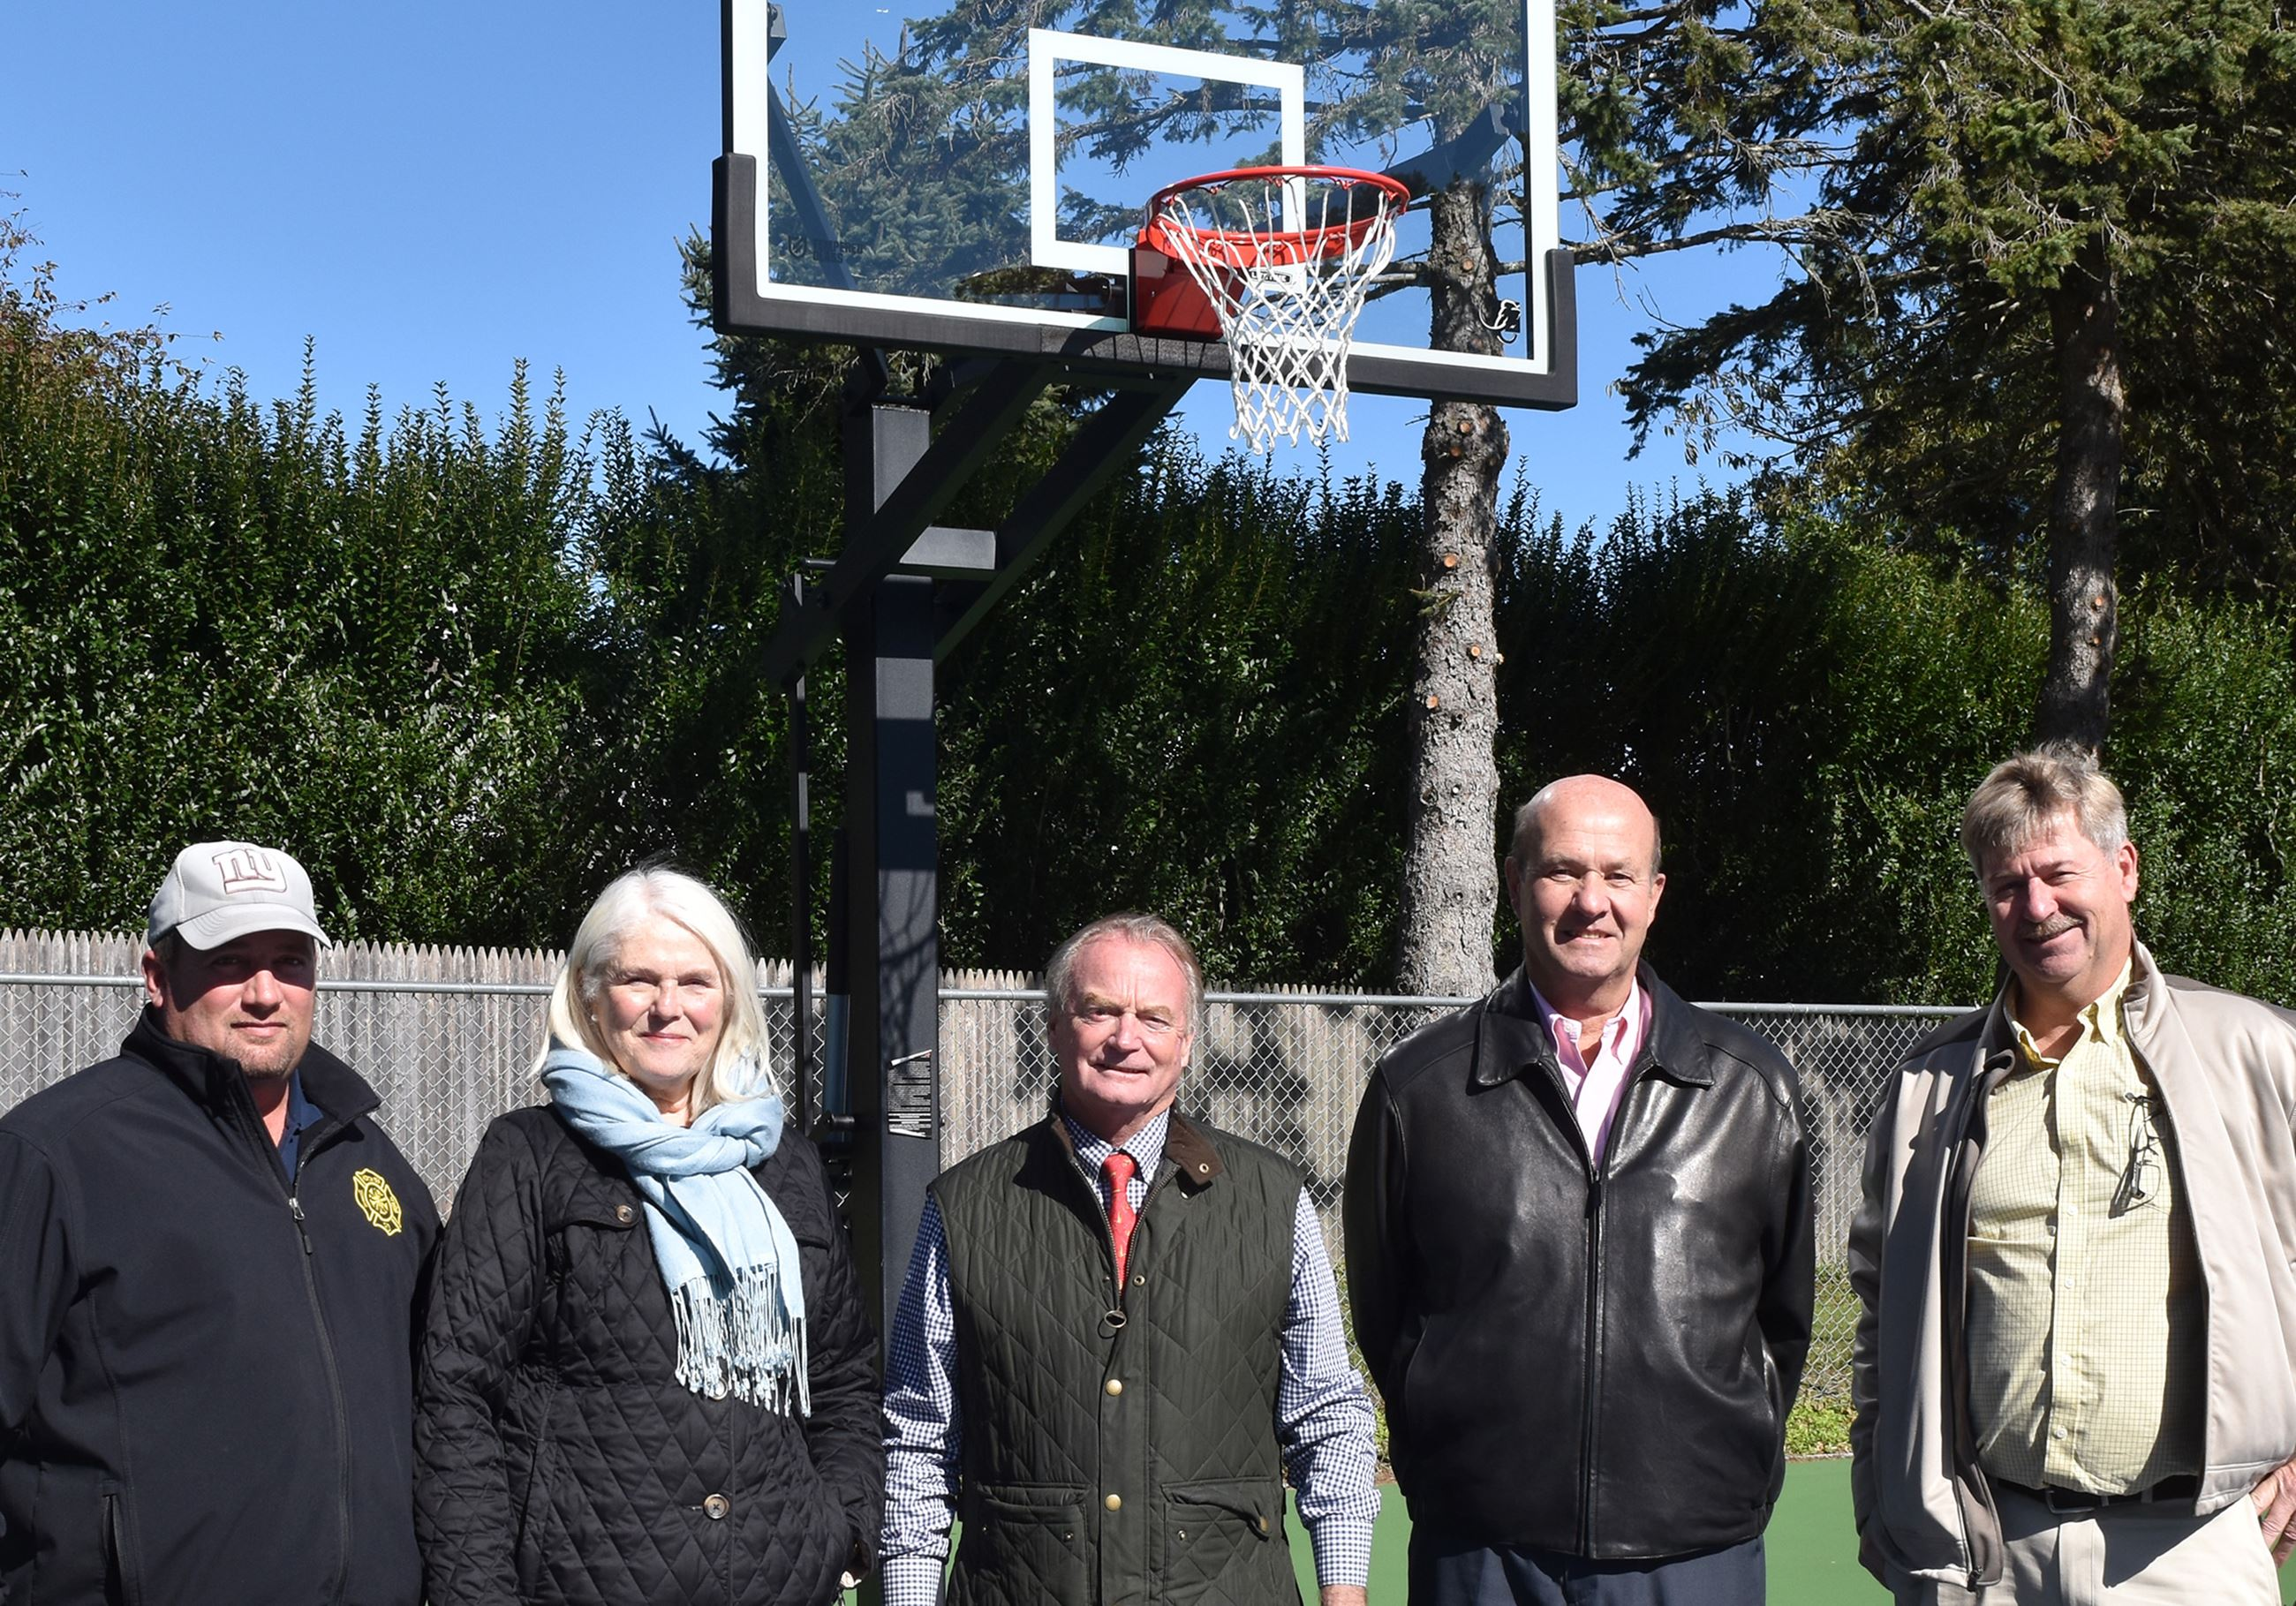 Image of Lola Prentice basketball court opening group photo